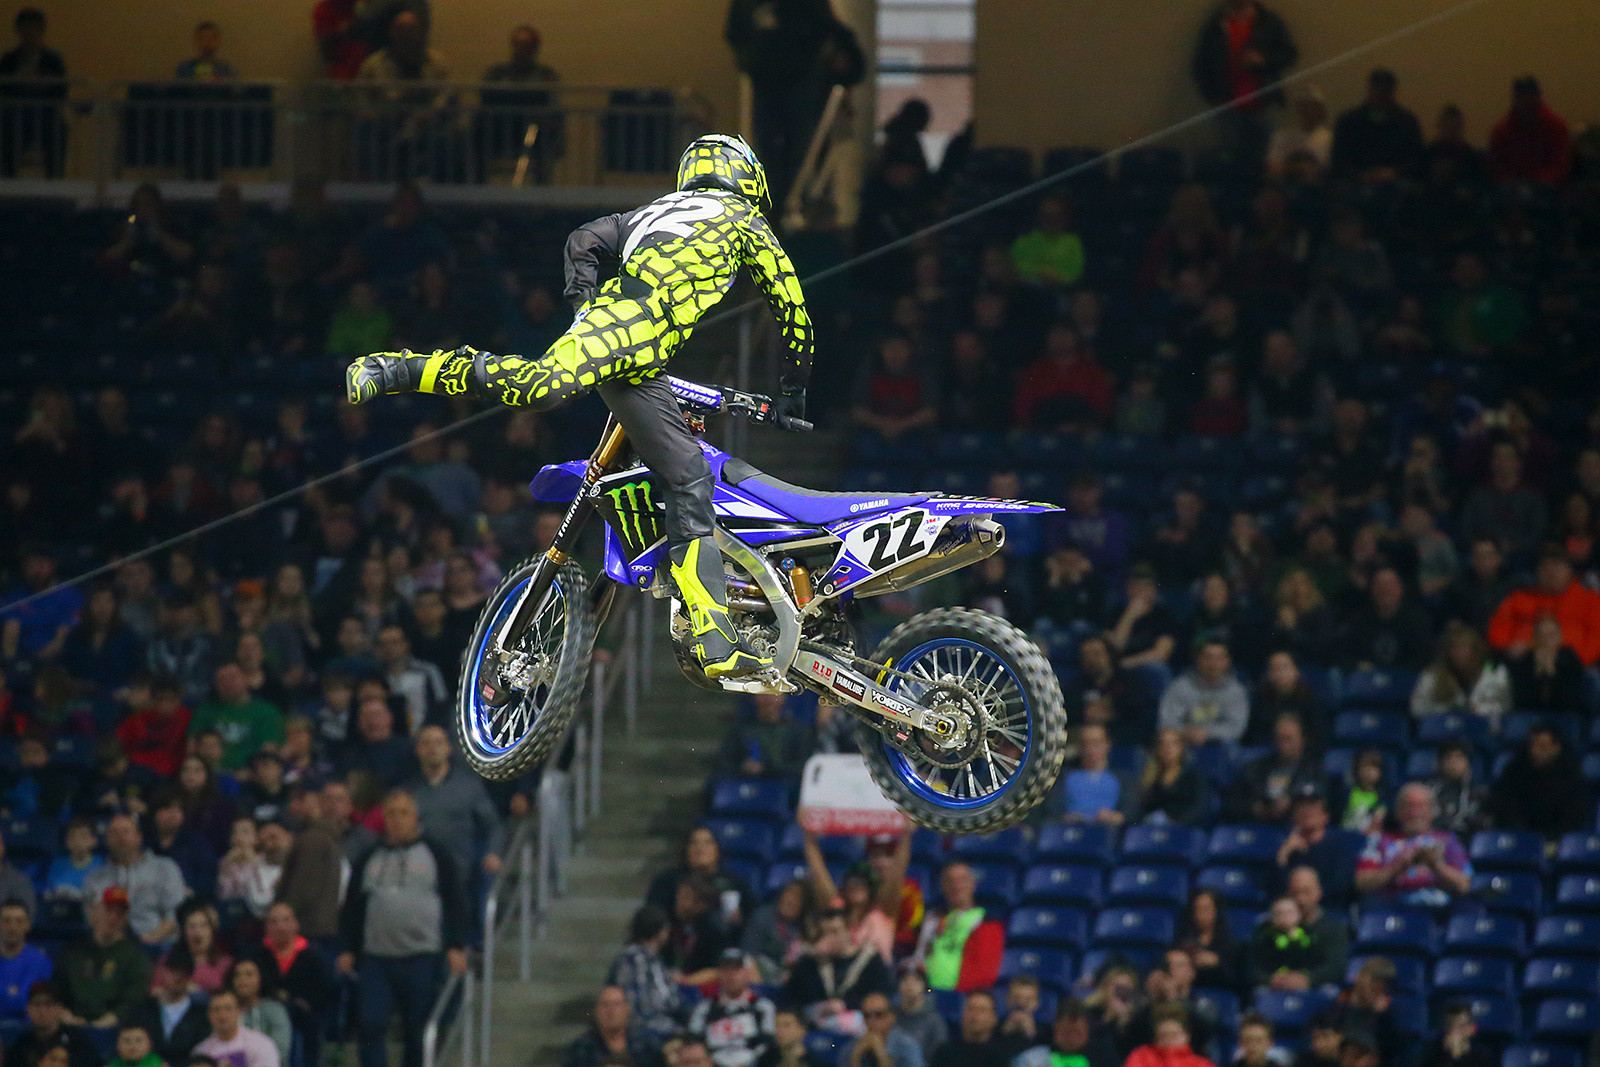 Vital MX Photo Blast from Detroit, and Chad Reed - Photo Blast: Detroit - Motocross Pictures - Vital MX